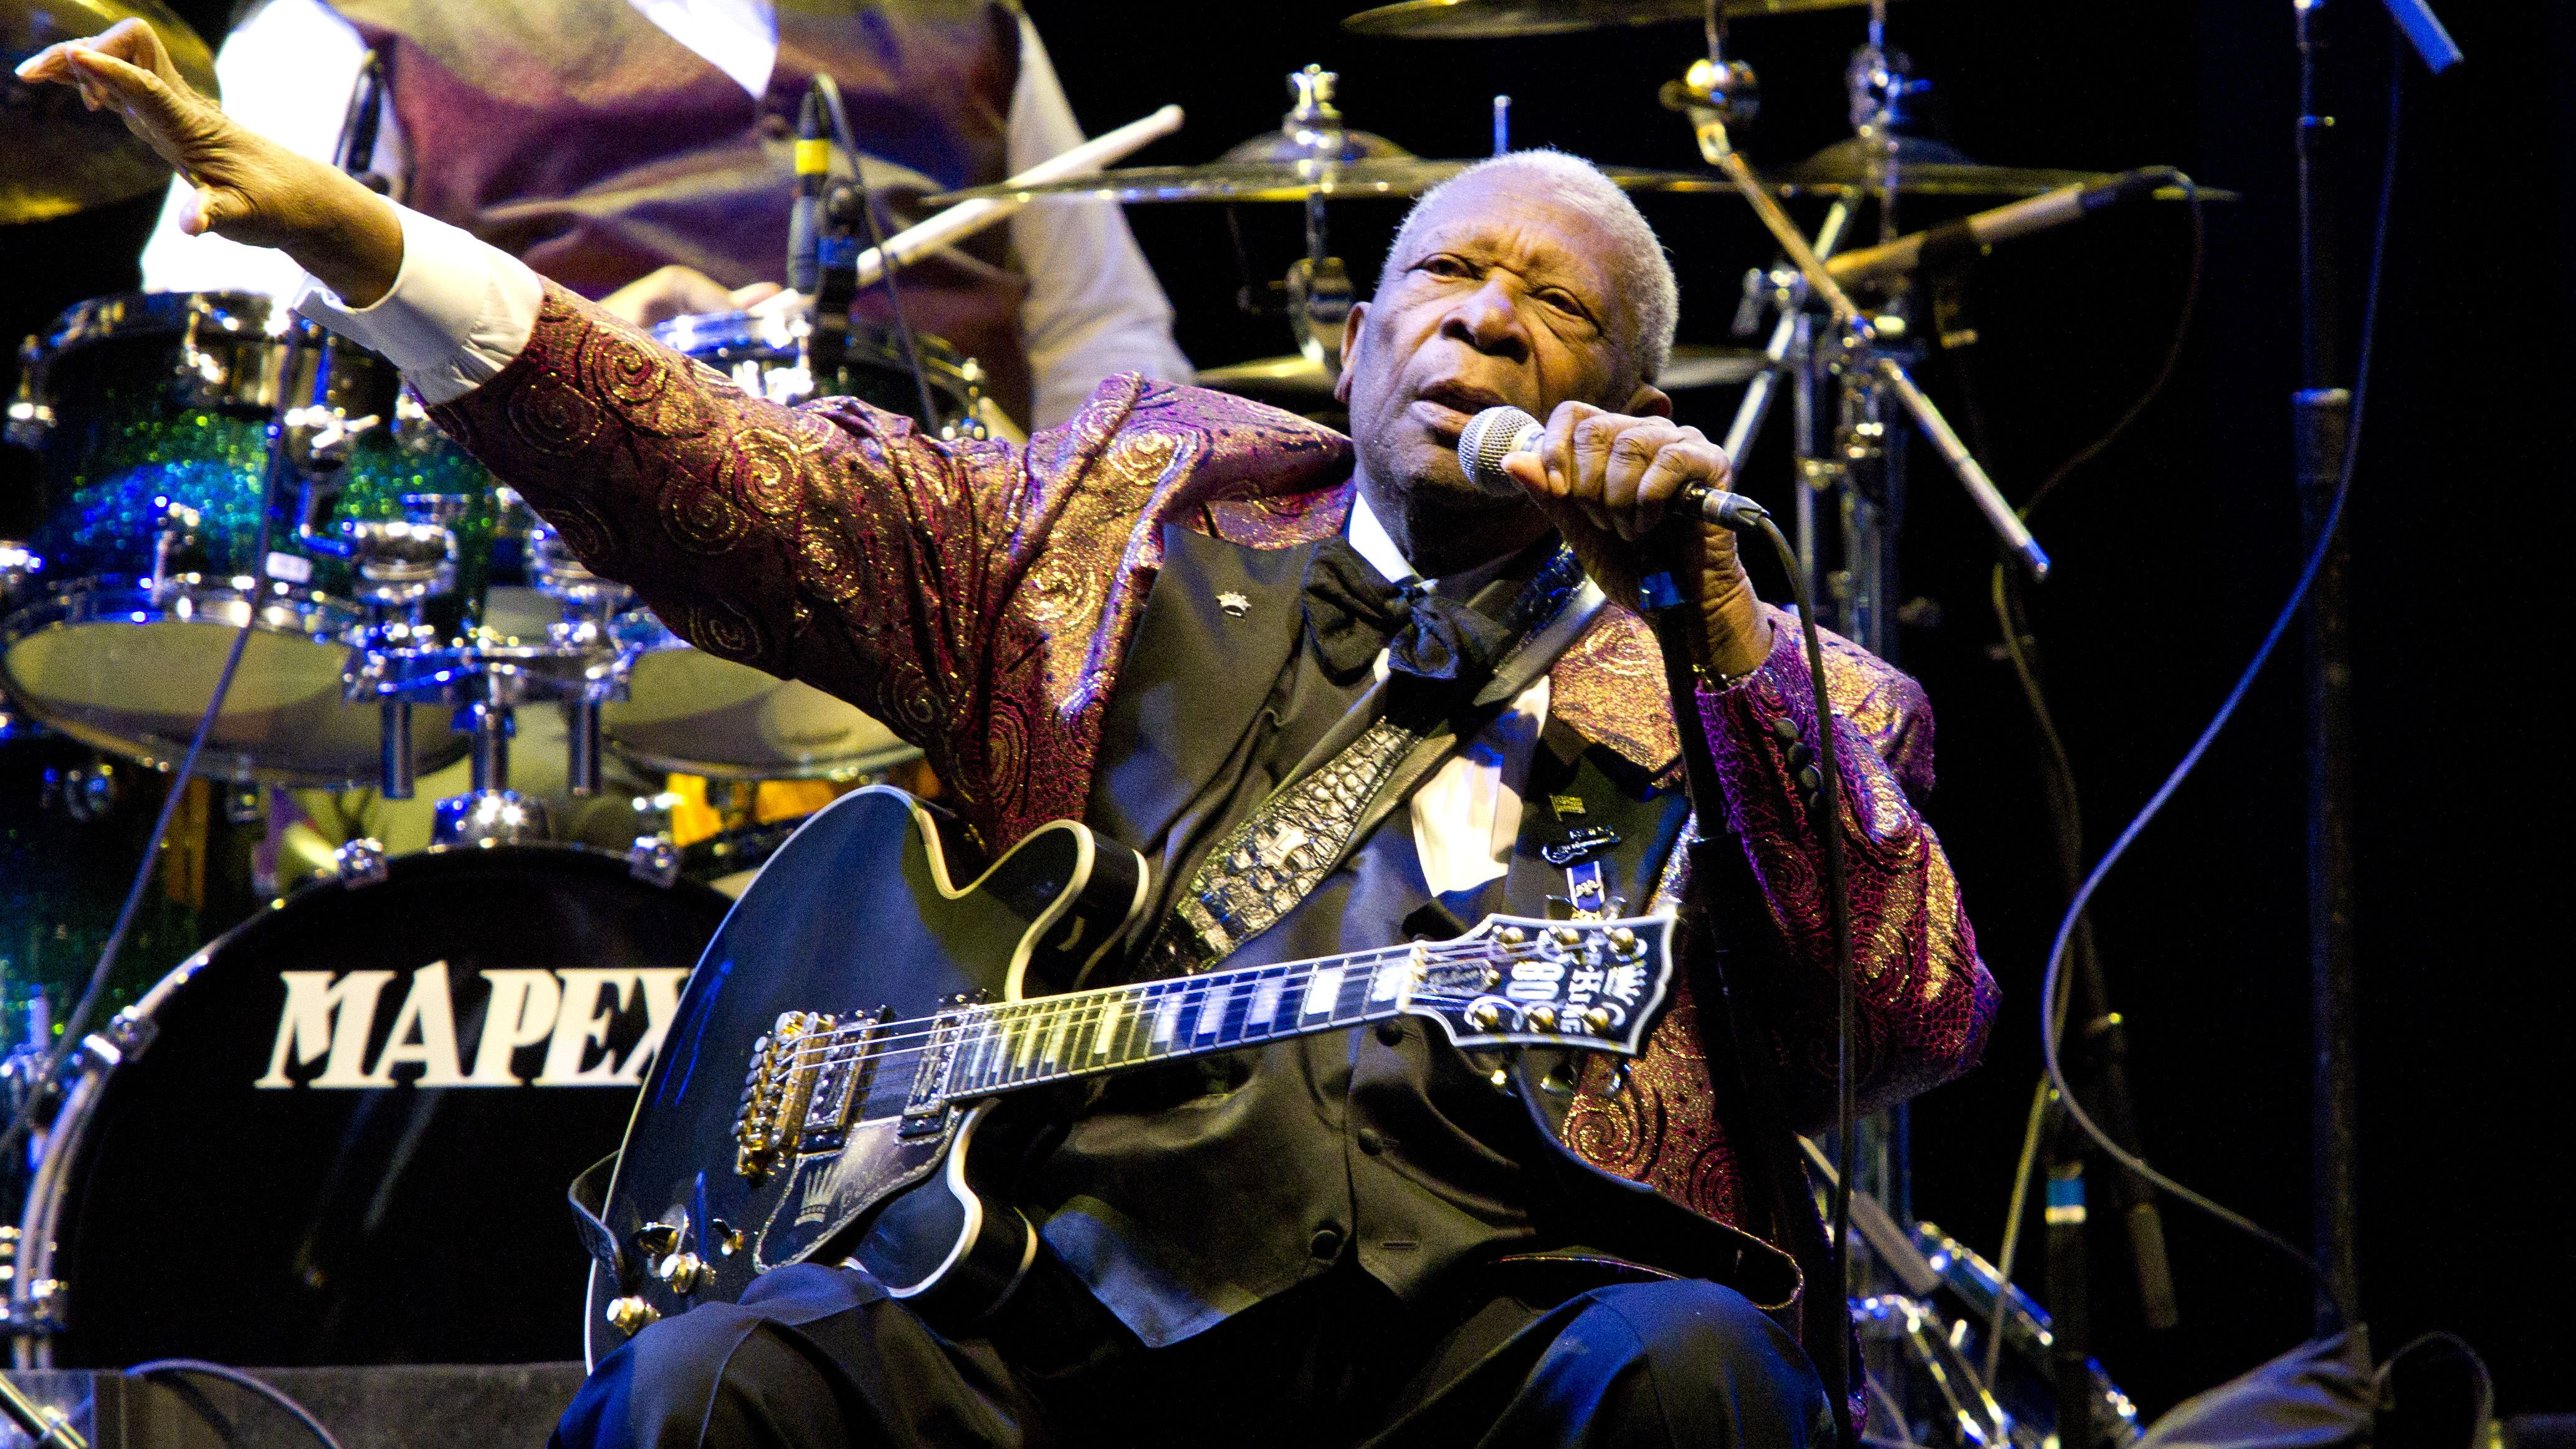 BB King performs at Club Nokia on November 11, 2011 in Los Angeles (Photo by Paul A. Hebert/Invision/AP)